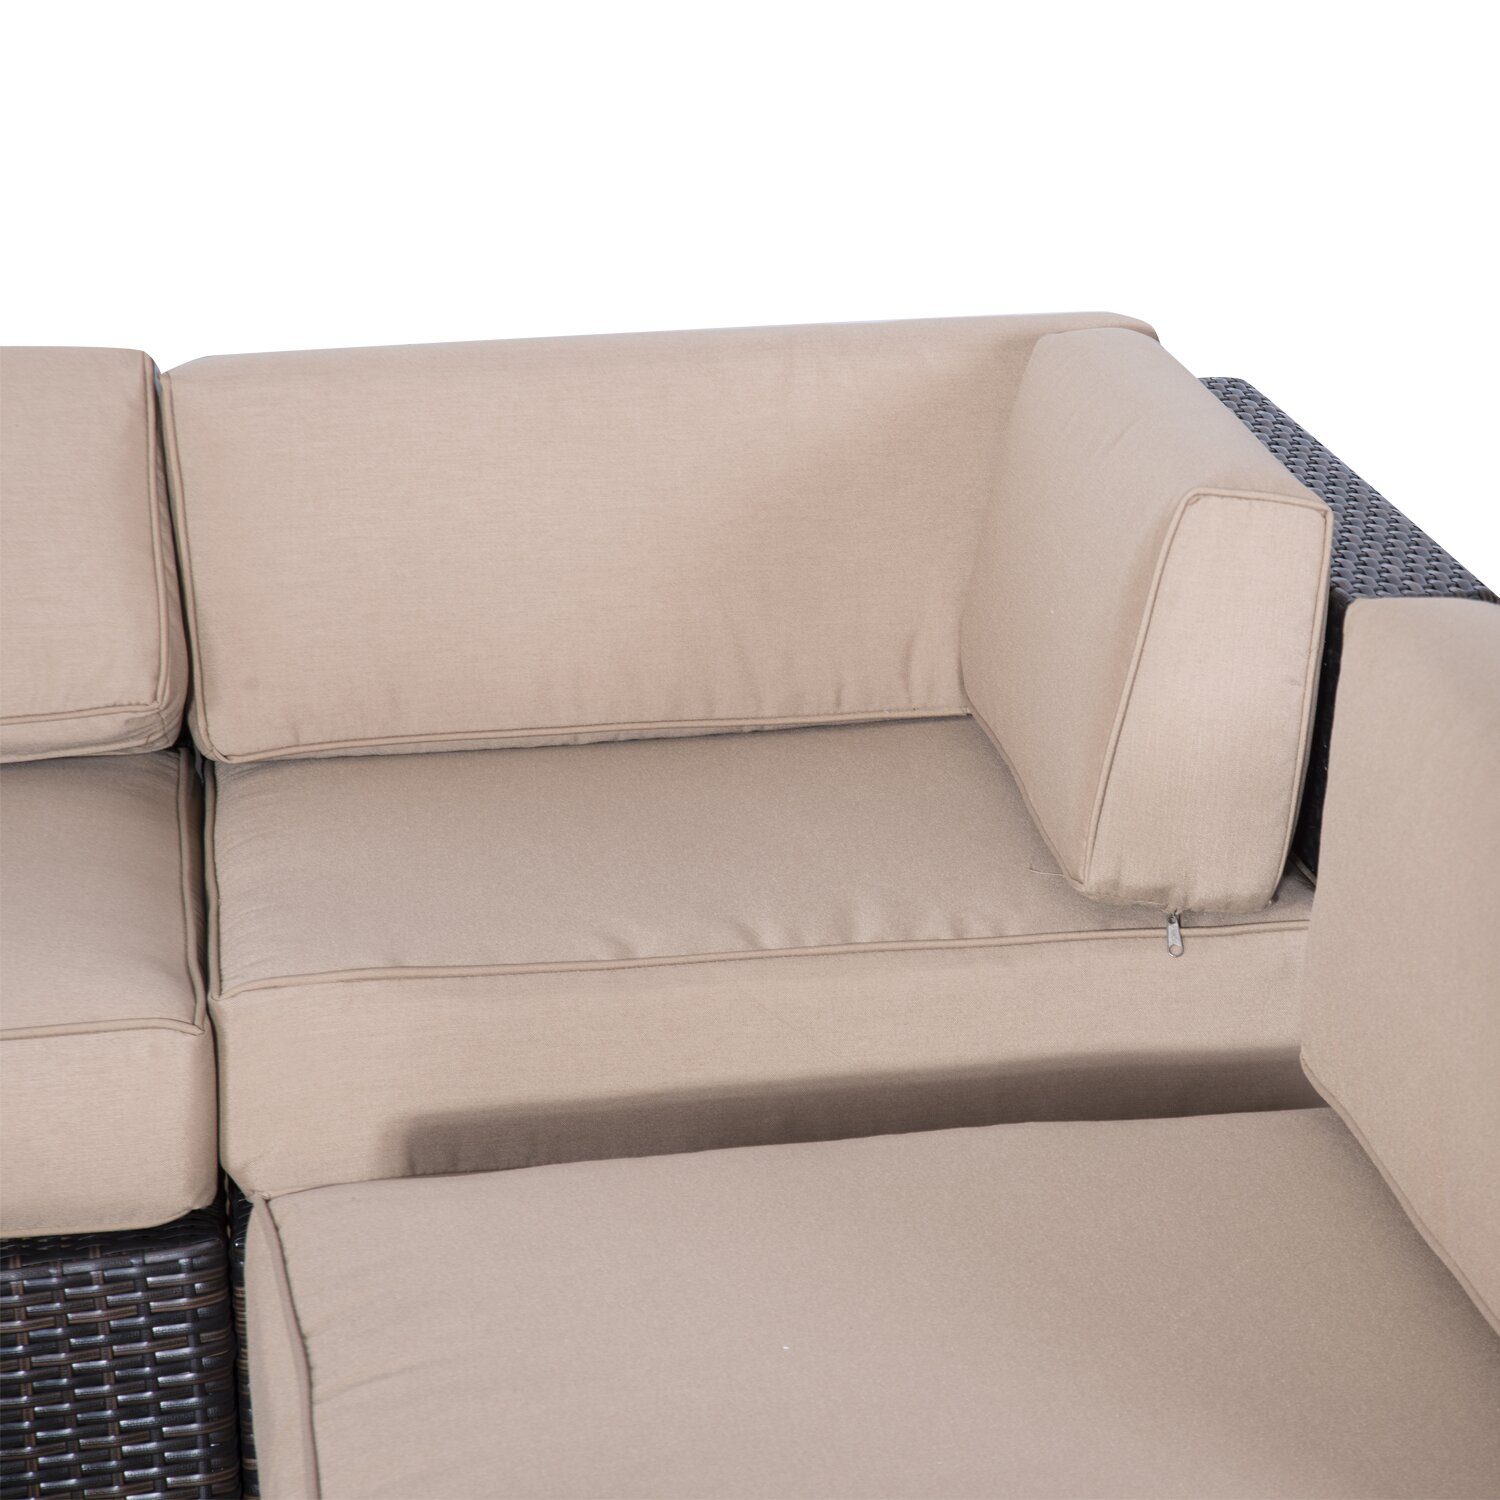 Outsunny Outsunny 9 Piece Seating Group with Cushions